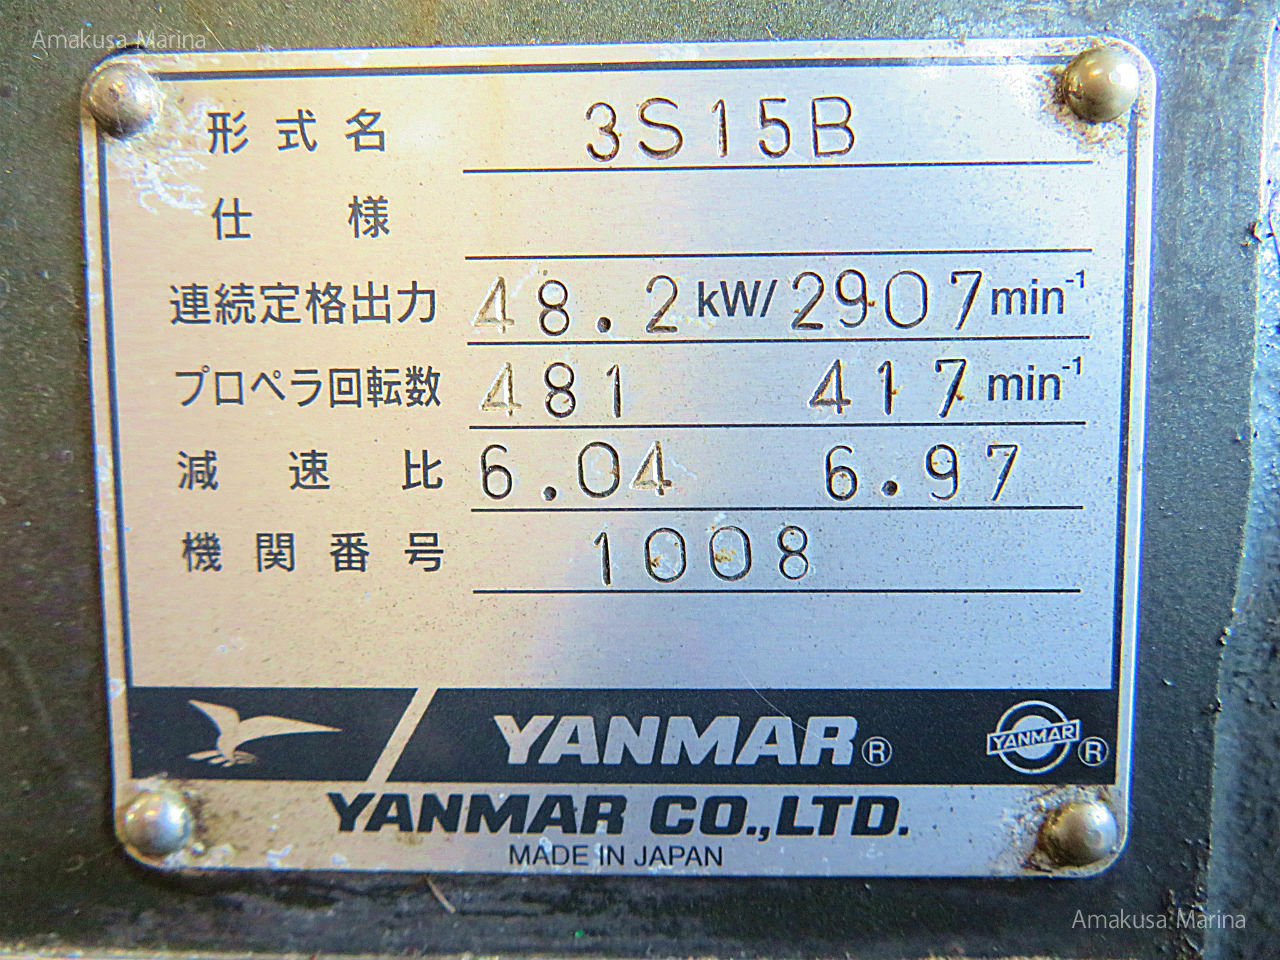 YANMAR 3S15B 65 5PS 6 04 | Amakusa Marina & Co